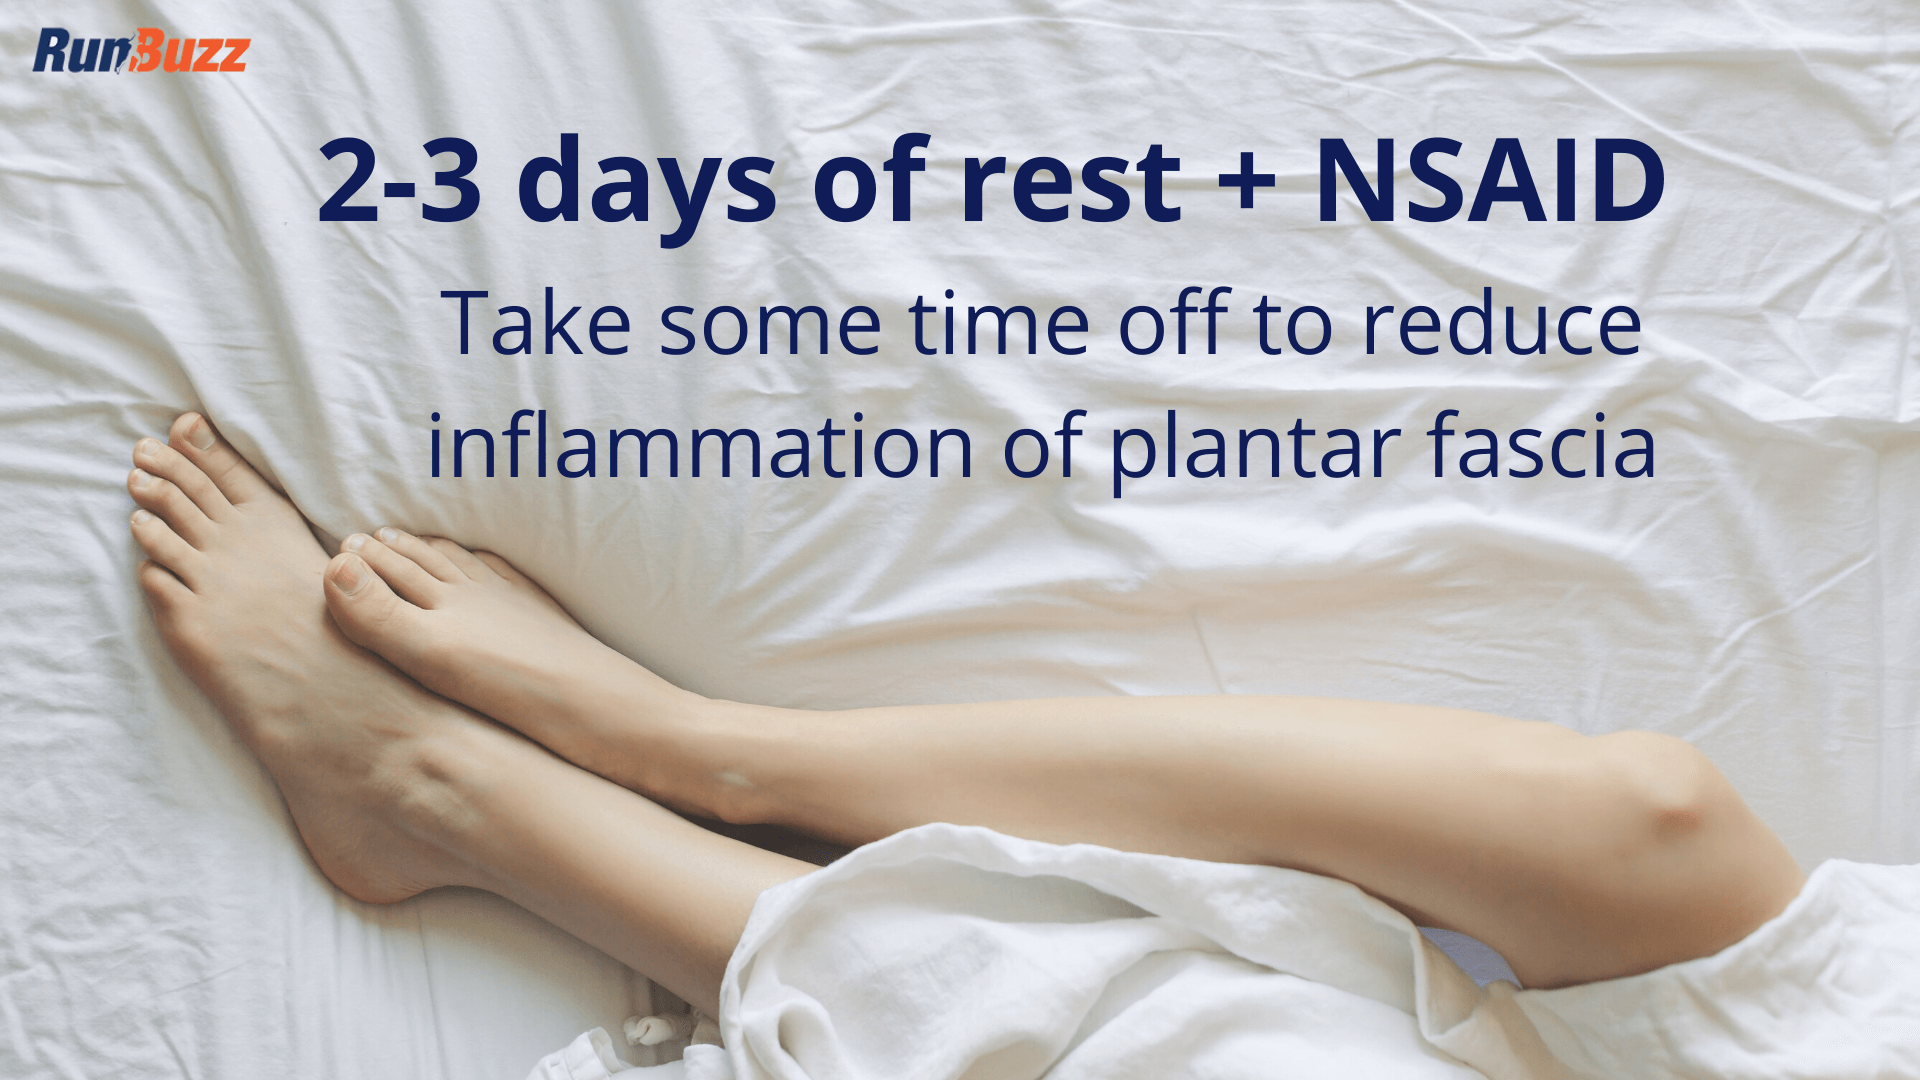 2-3-days-of-rest-and-NSAID